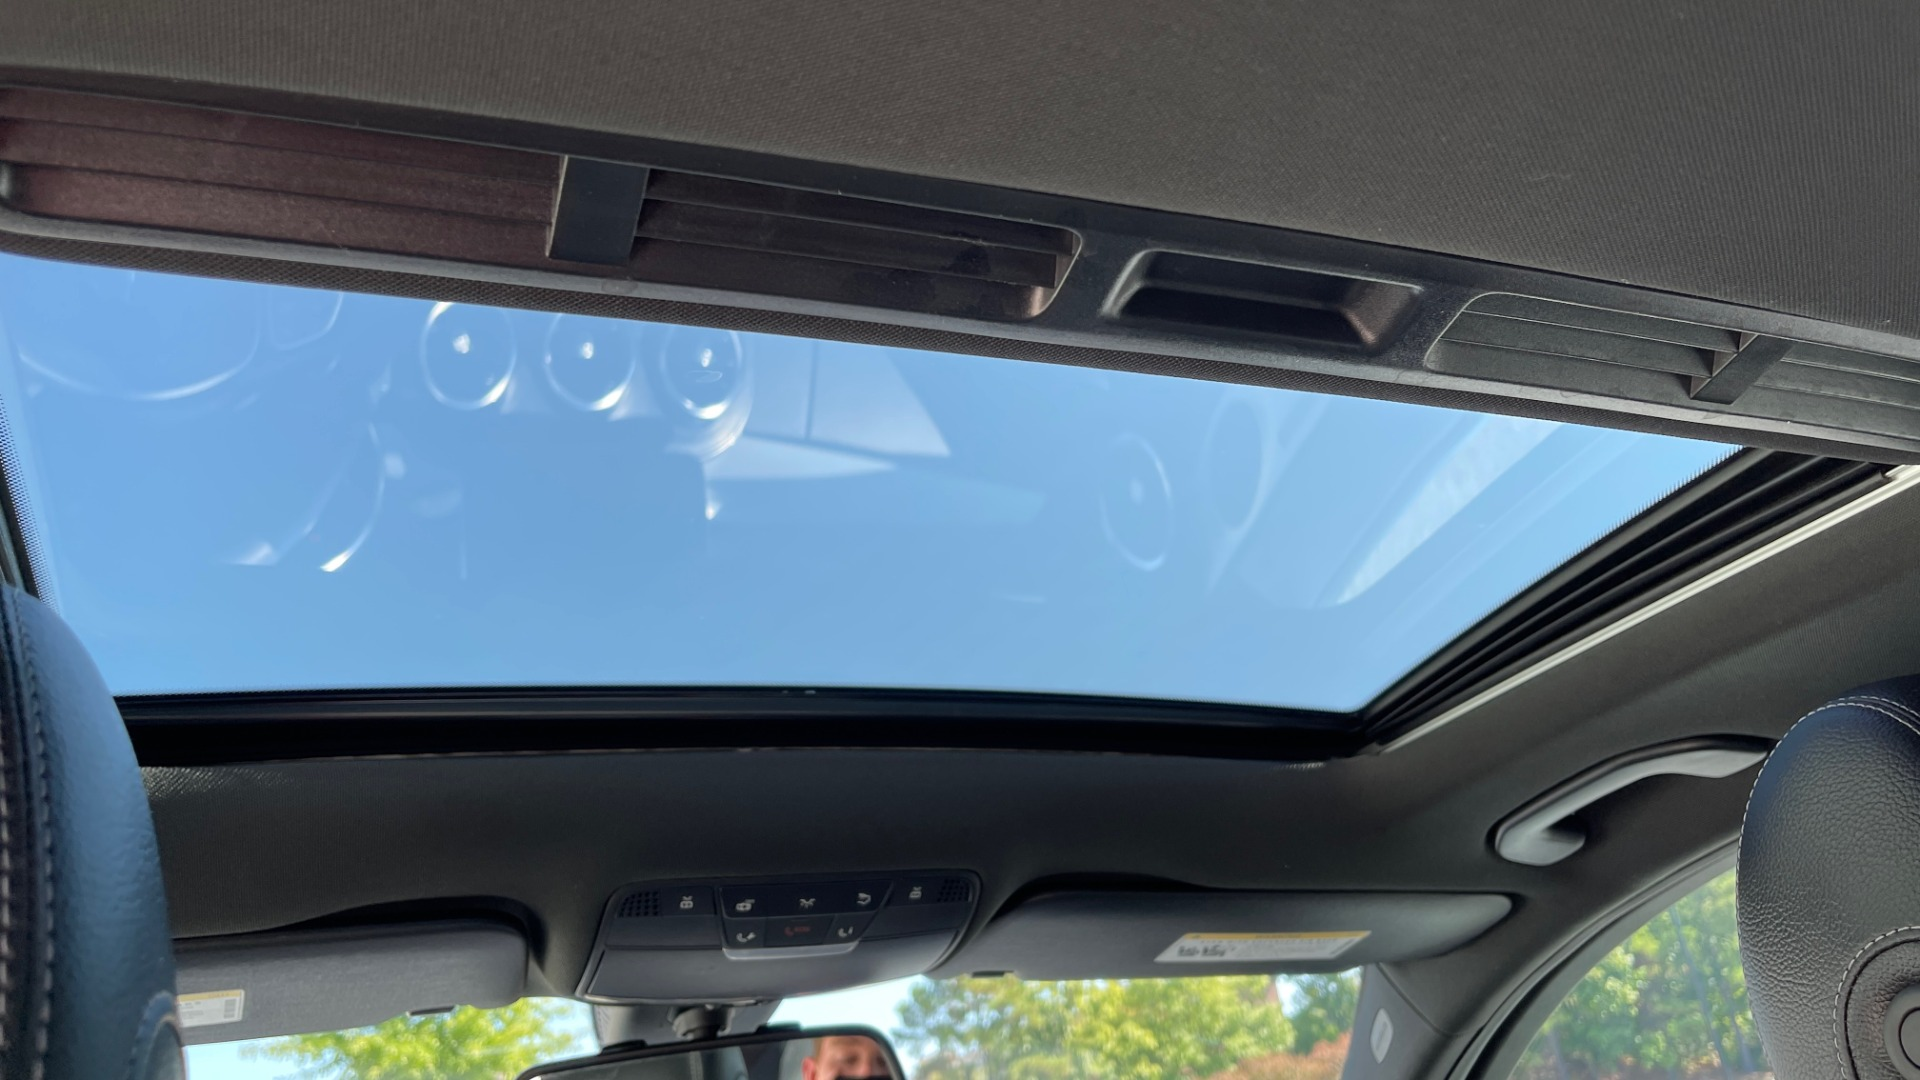 Used 2018 Mercedes-Benz C-CLASS C 300 PREMIUM / APPLE CARPLAY / KEYLESS-GO / SUNROOF / REARVIEW for sale $32,995 at Formula Imports in Charlotte NC 28227 45